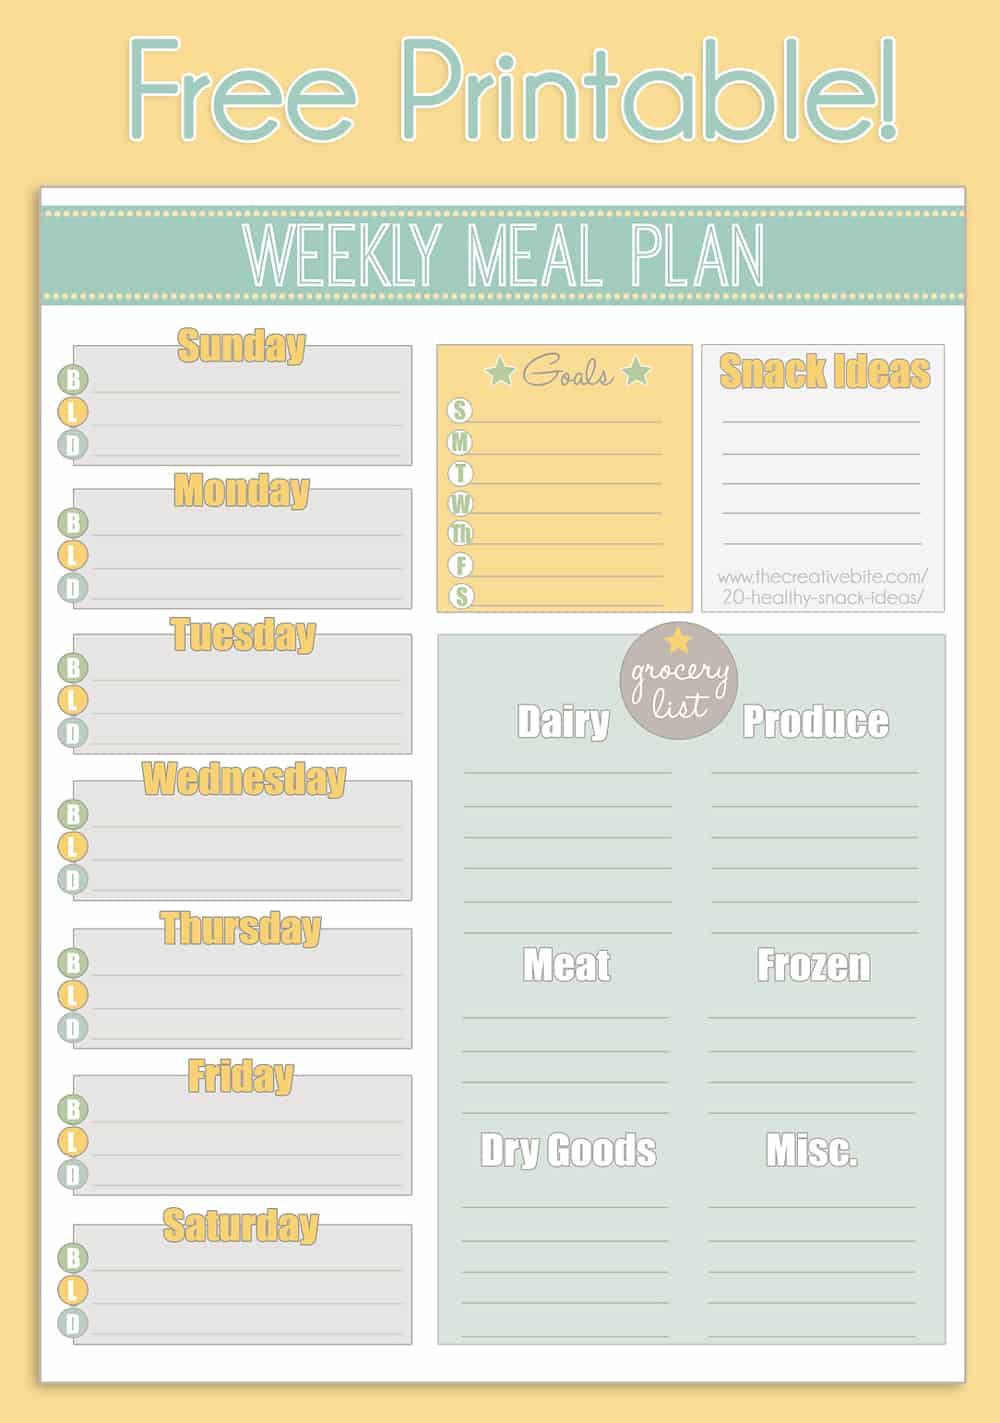 photo regarding Meal Planning Printable referred to as Cost-free Printable Weekly Supper Planner + Calendar